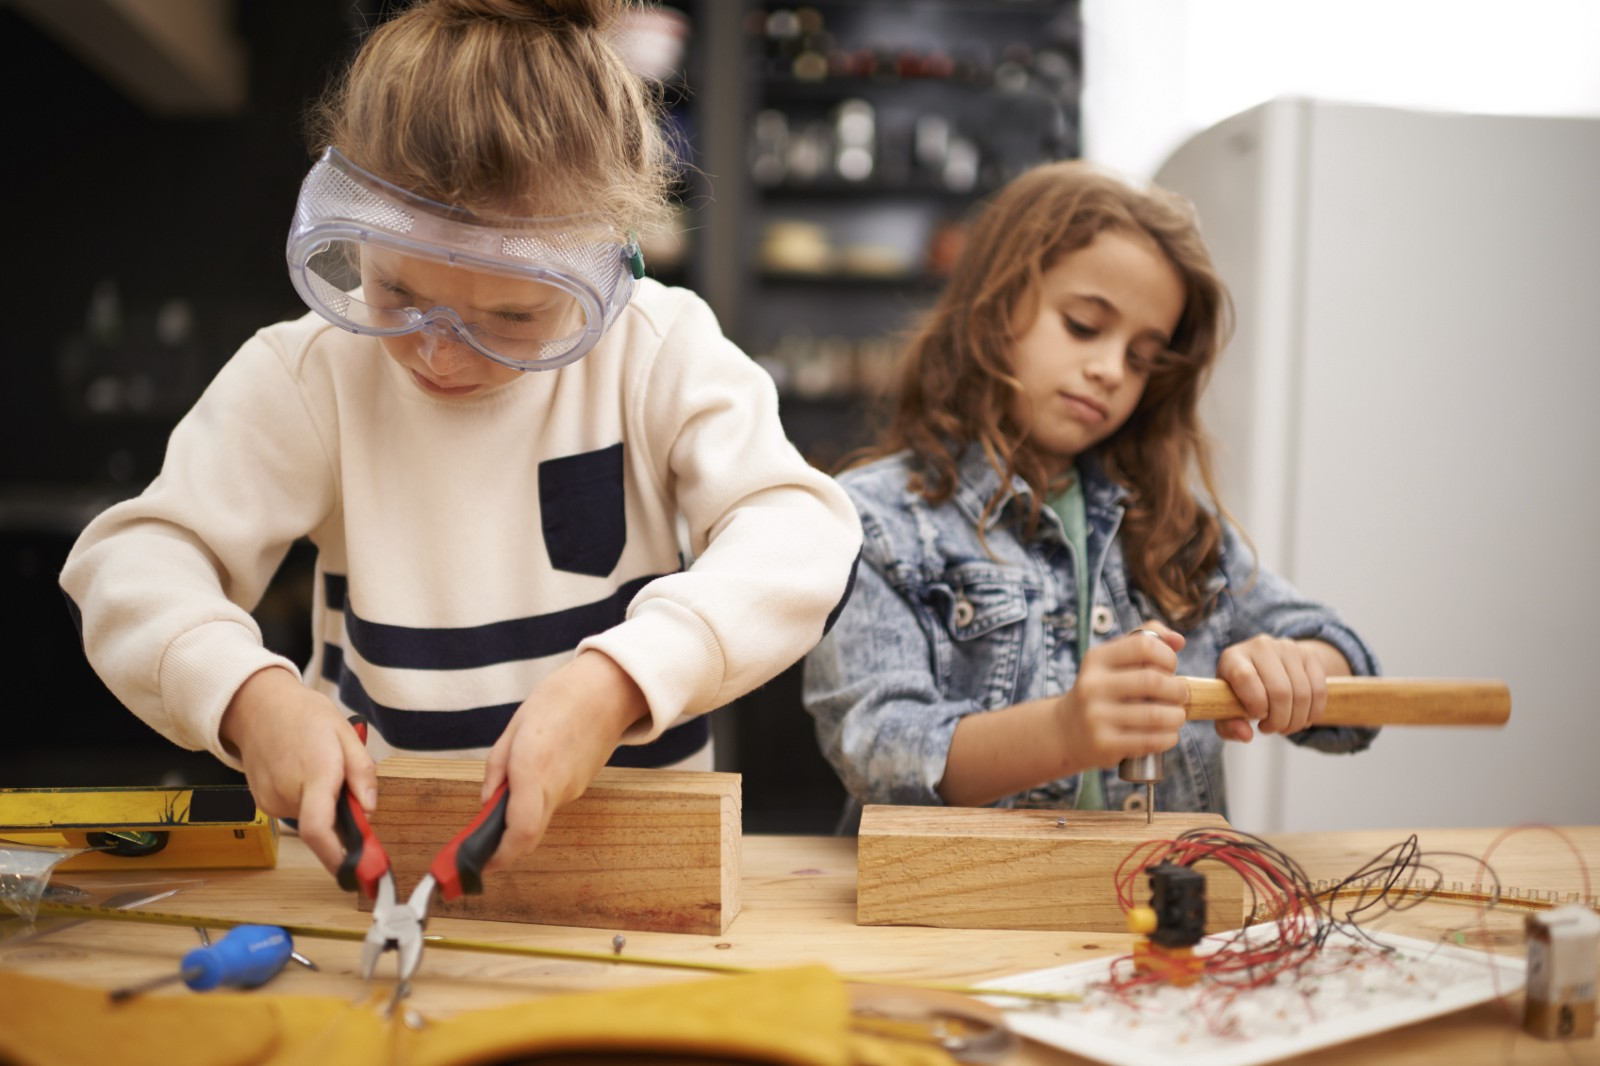 Harnessing Childrens Natural Ways Of >> Kids Can Build Our Most Impactful 10x Solutions Katy Kasmai Medium